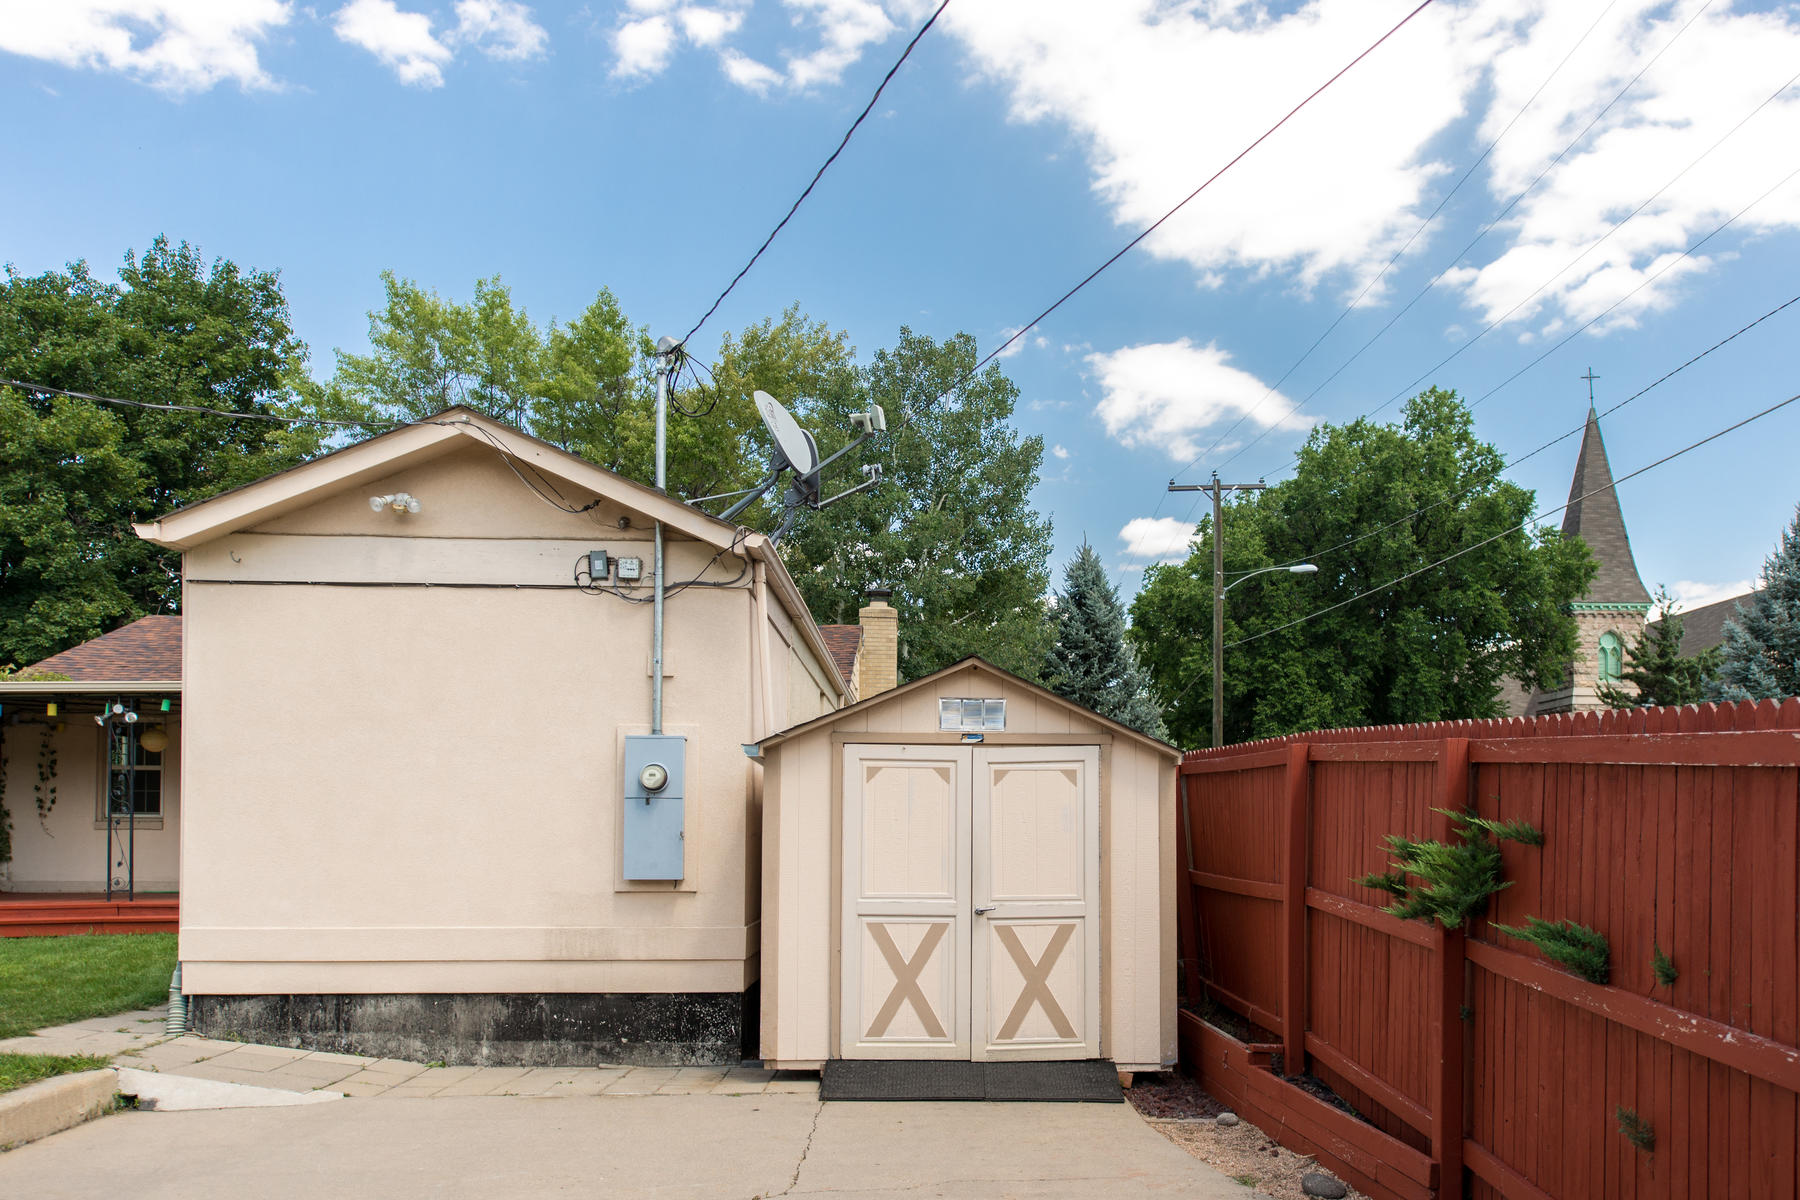 Additional photo for property listing at 1301 Poplar Street 1301 Poplar Street Denver, Colorado 80220 United States